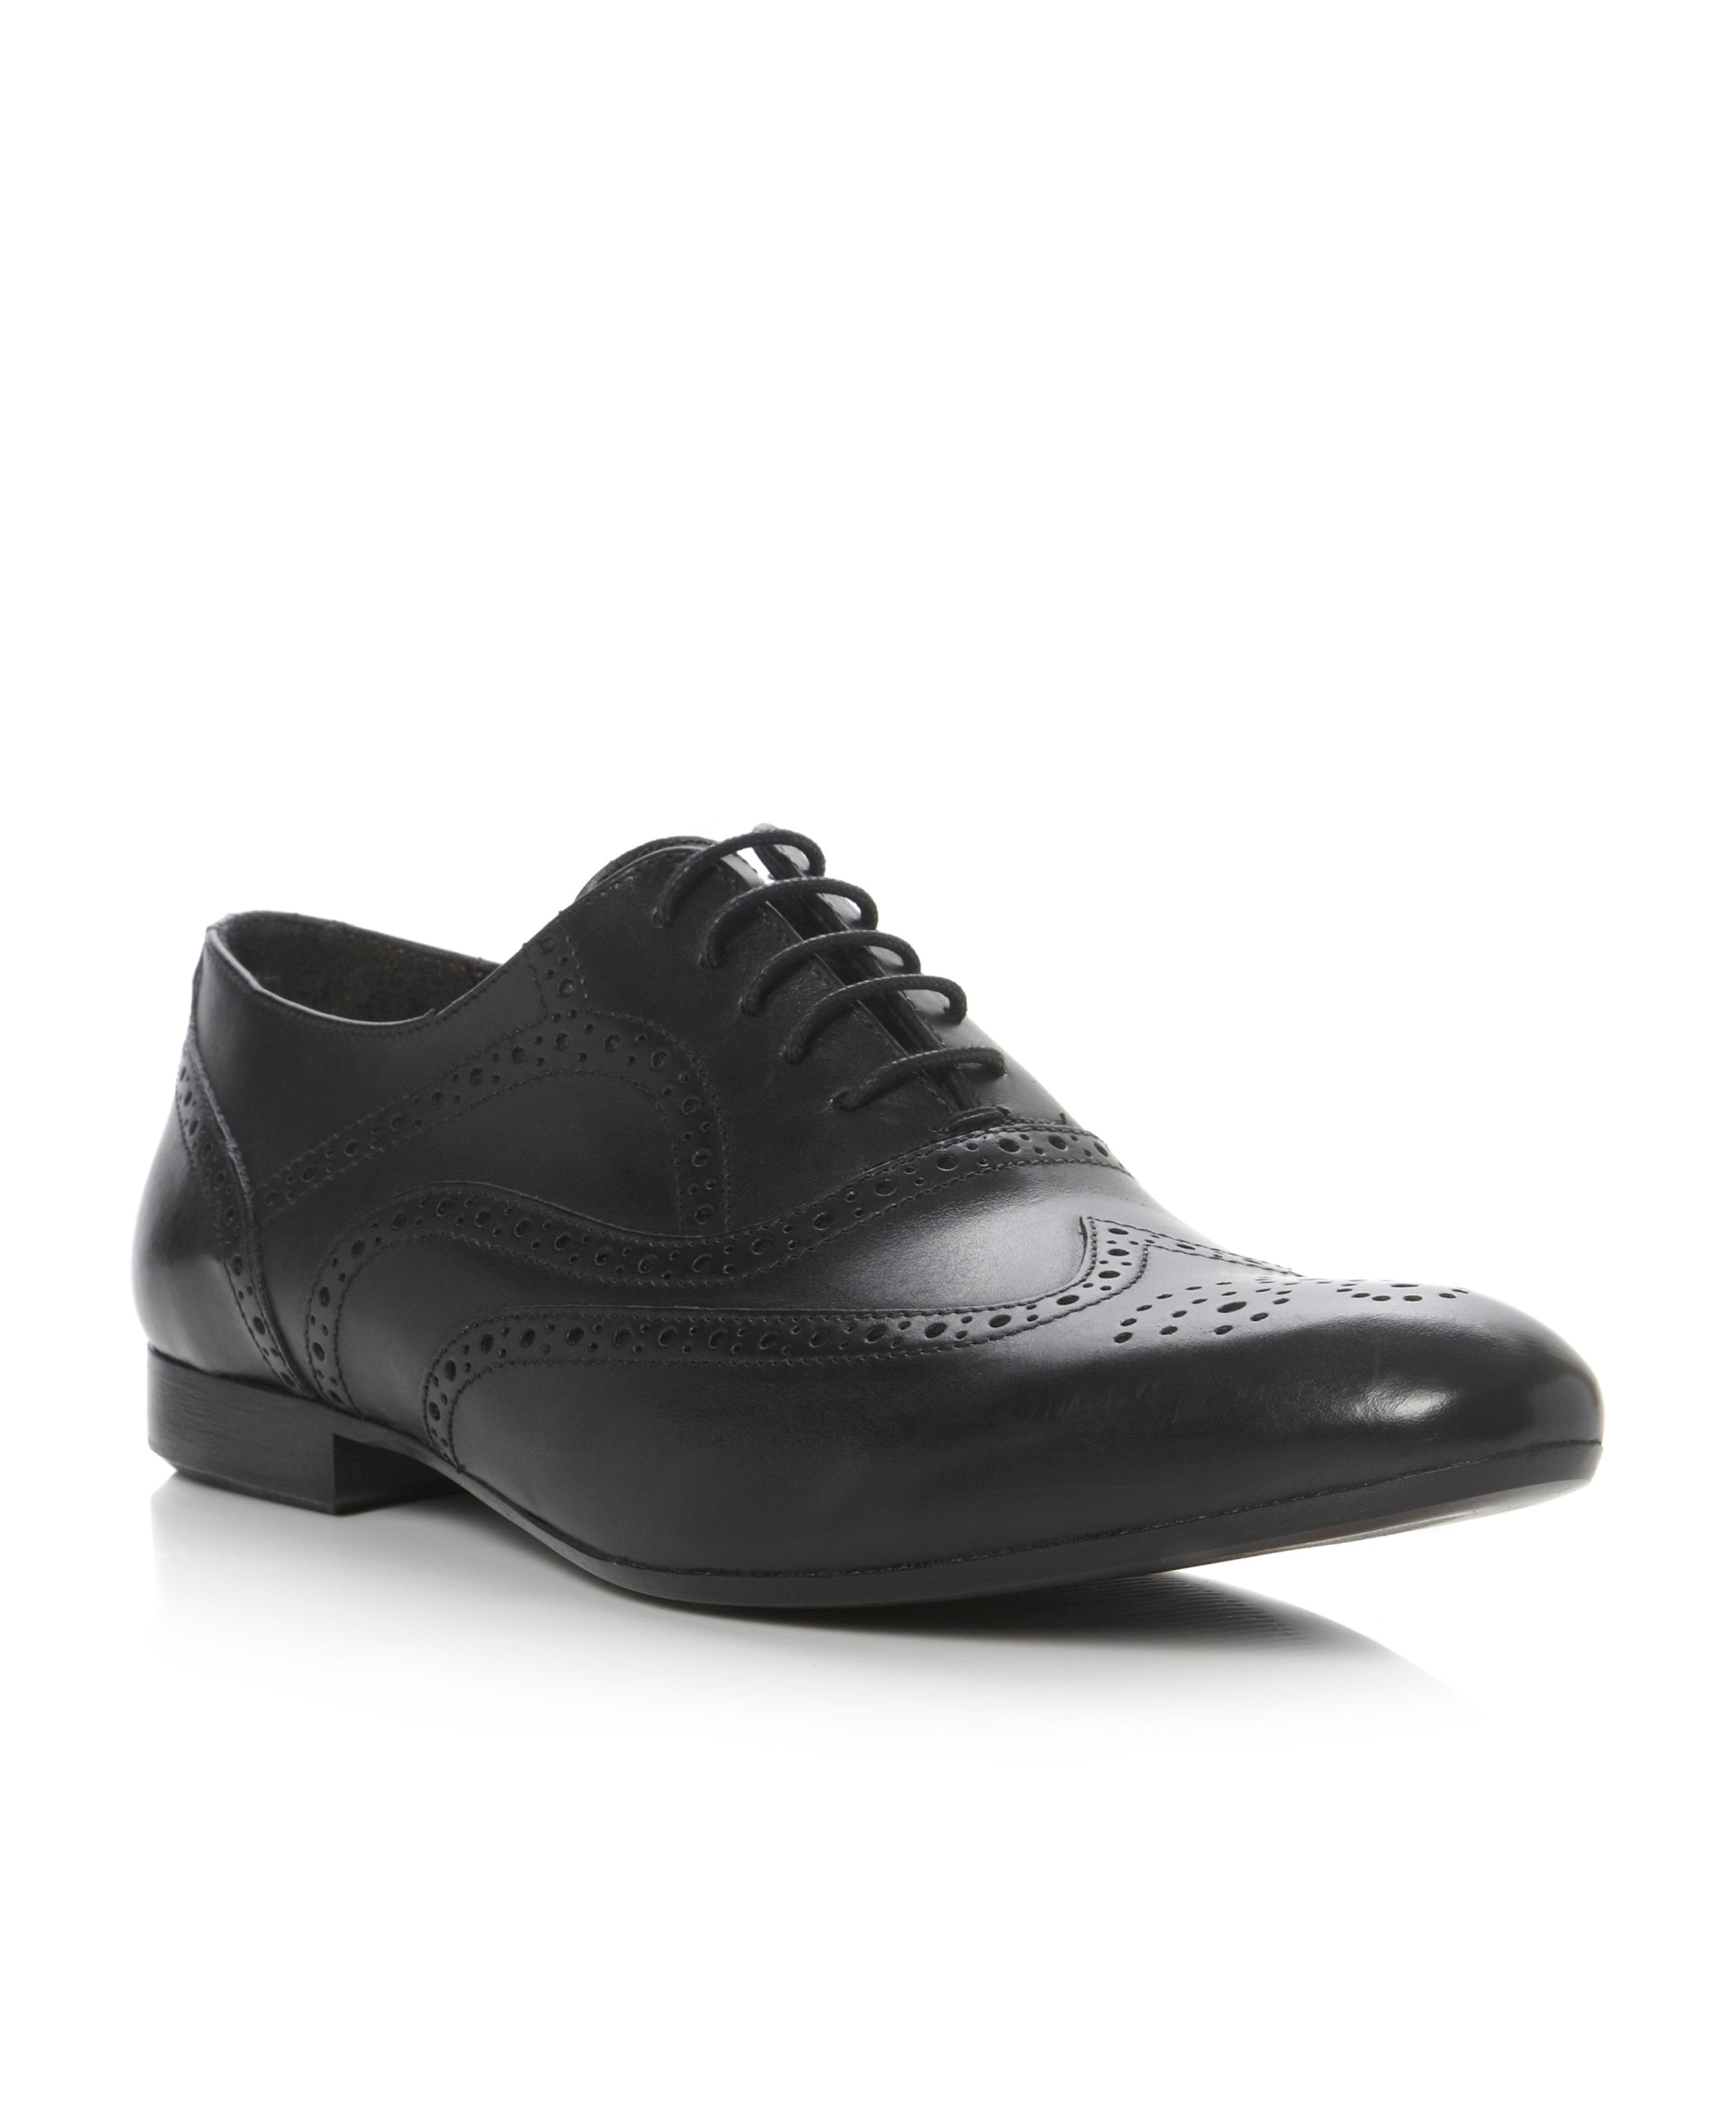 Appraisal sleak brogue 5 eye oxford